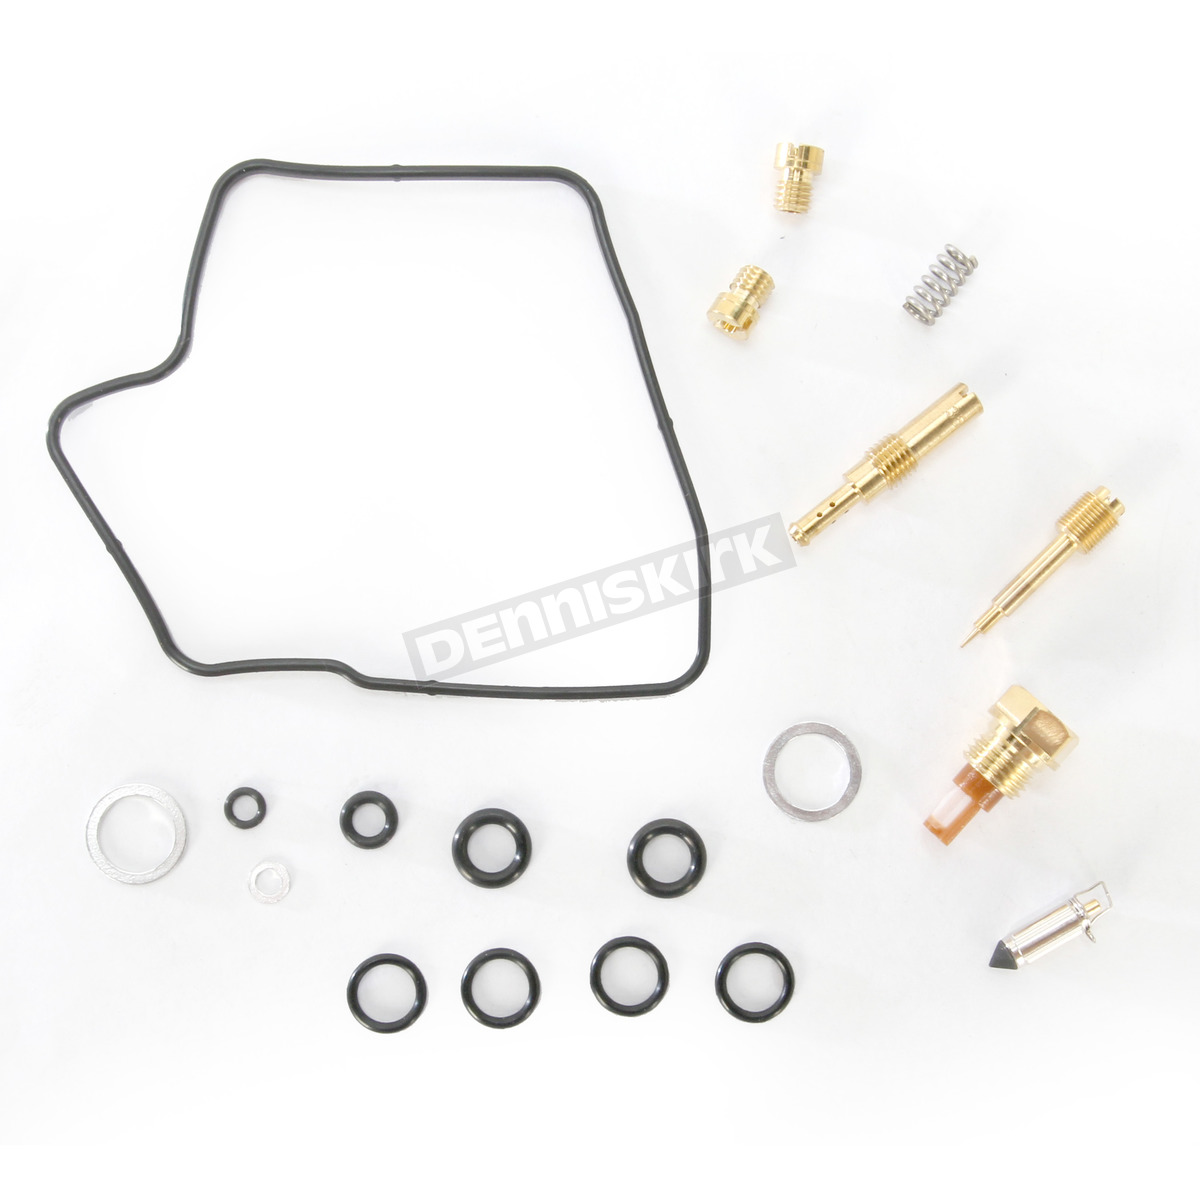 Carburetor Repair Kit - 18-4345